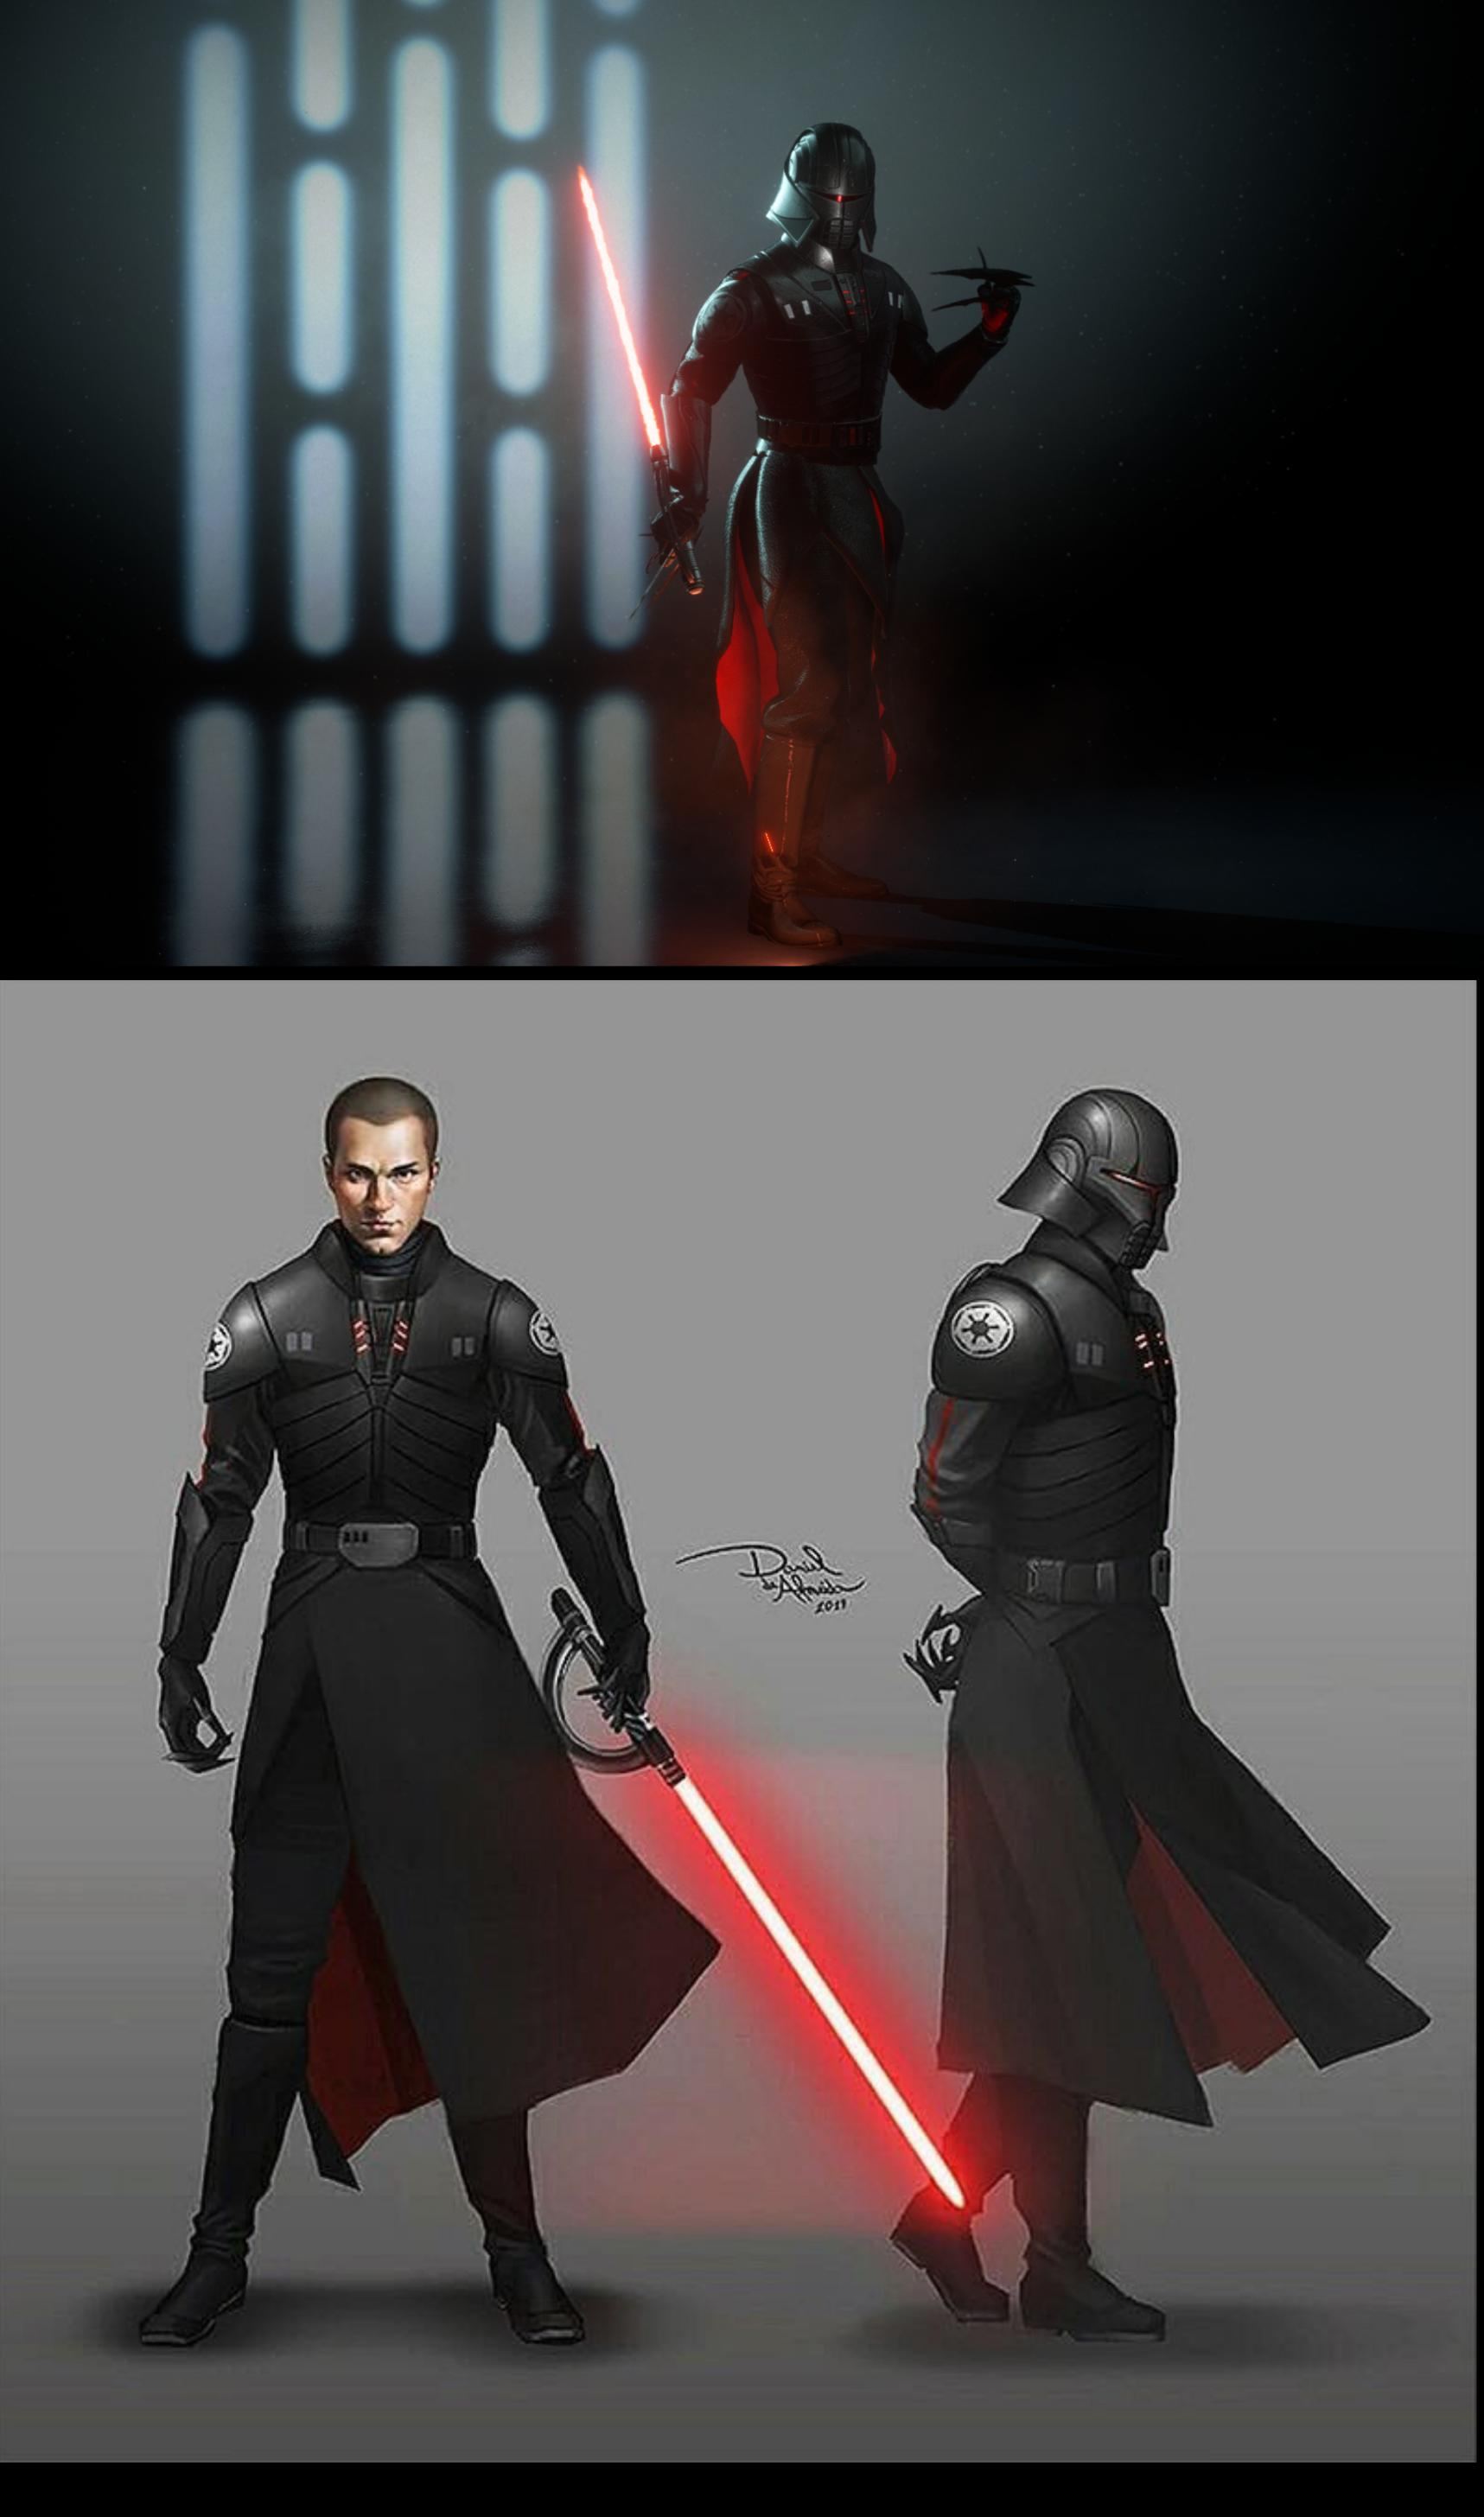 Inquisitor starkiller in battlefront